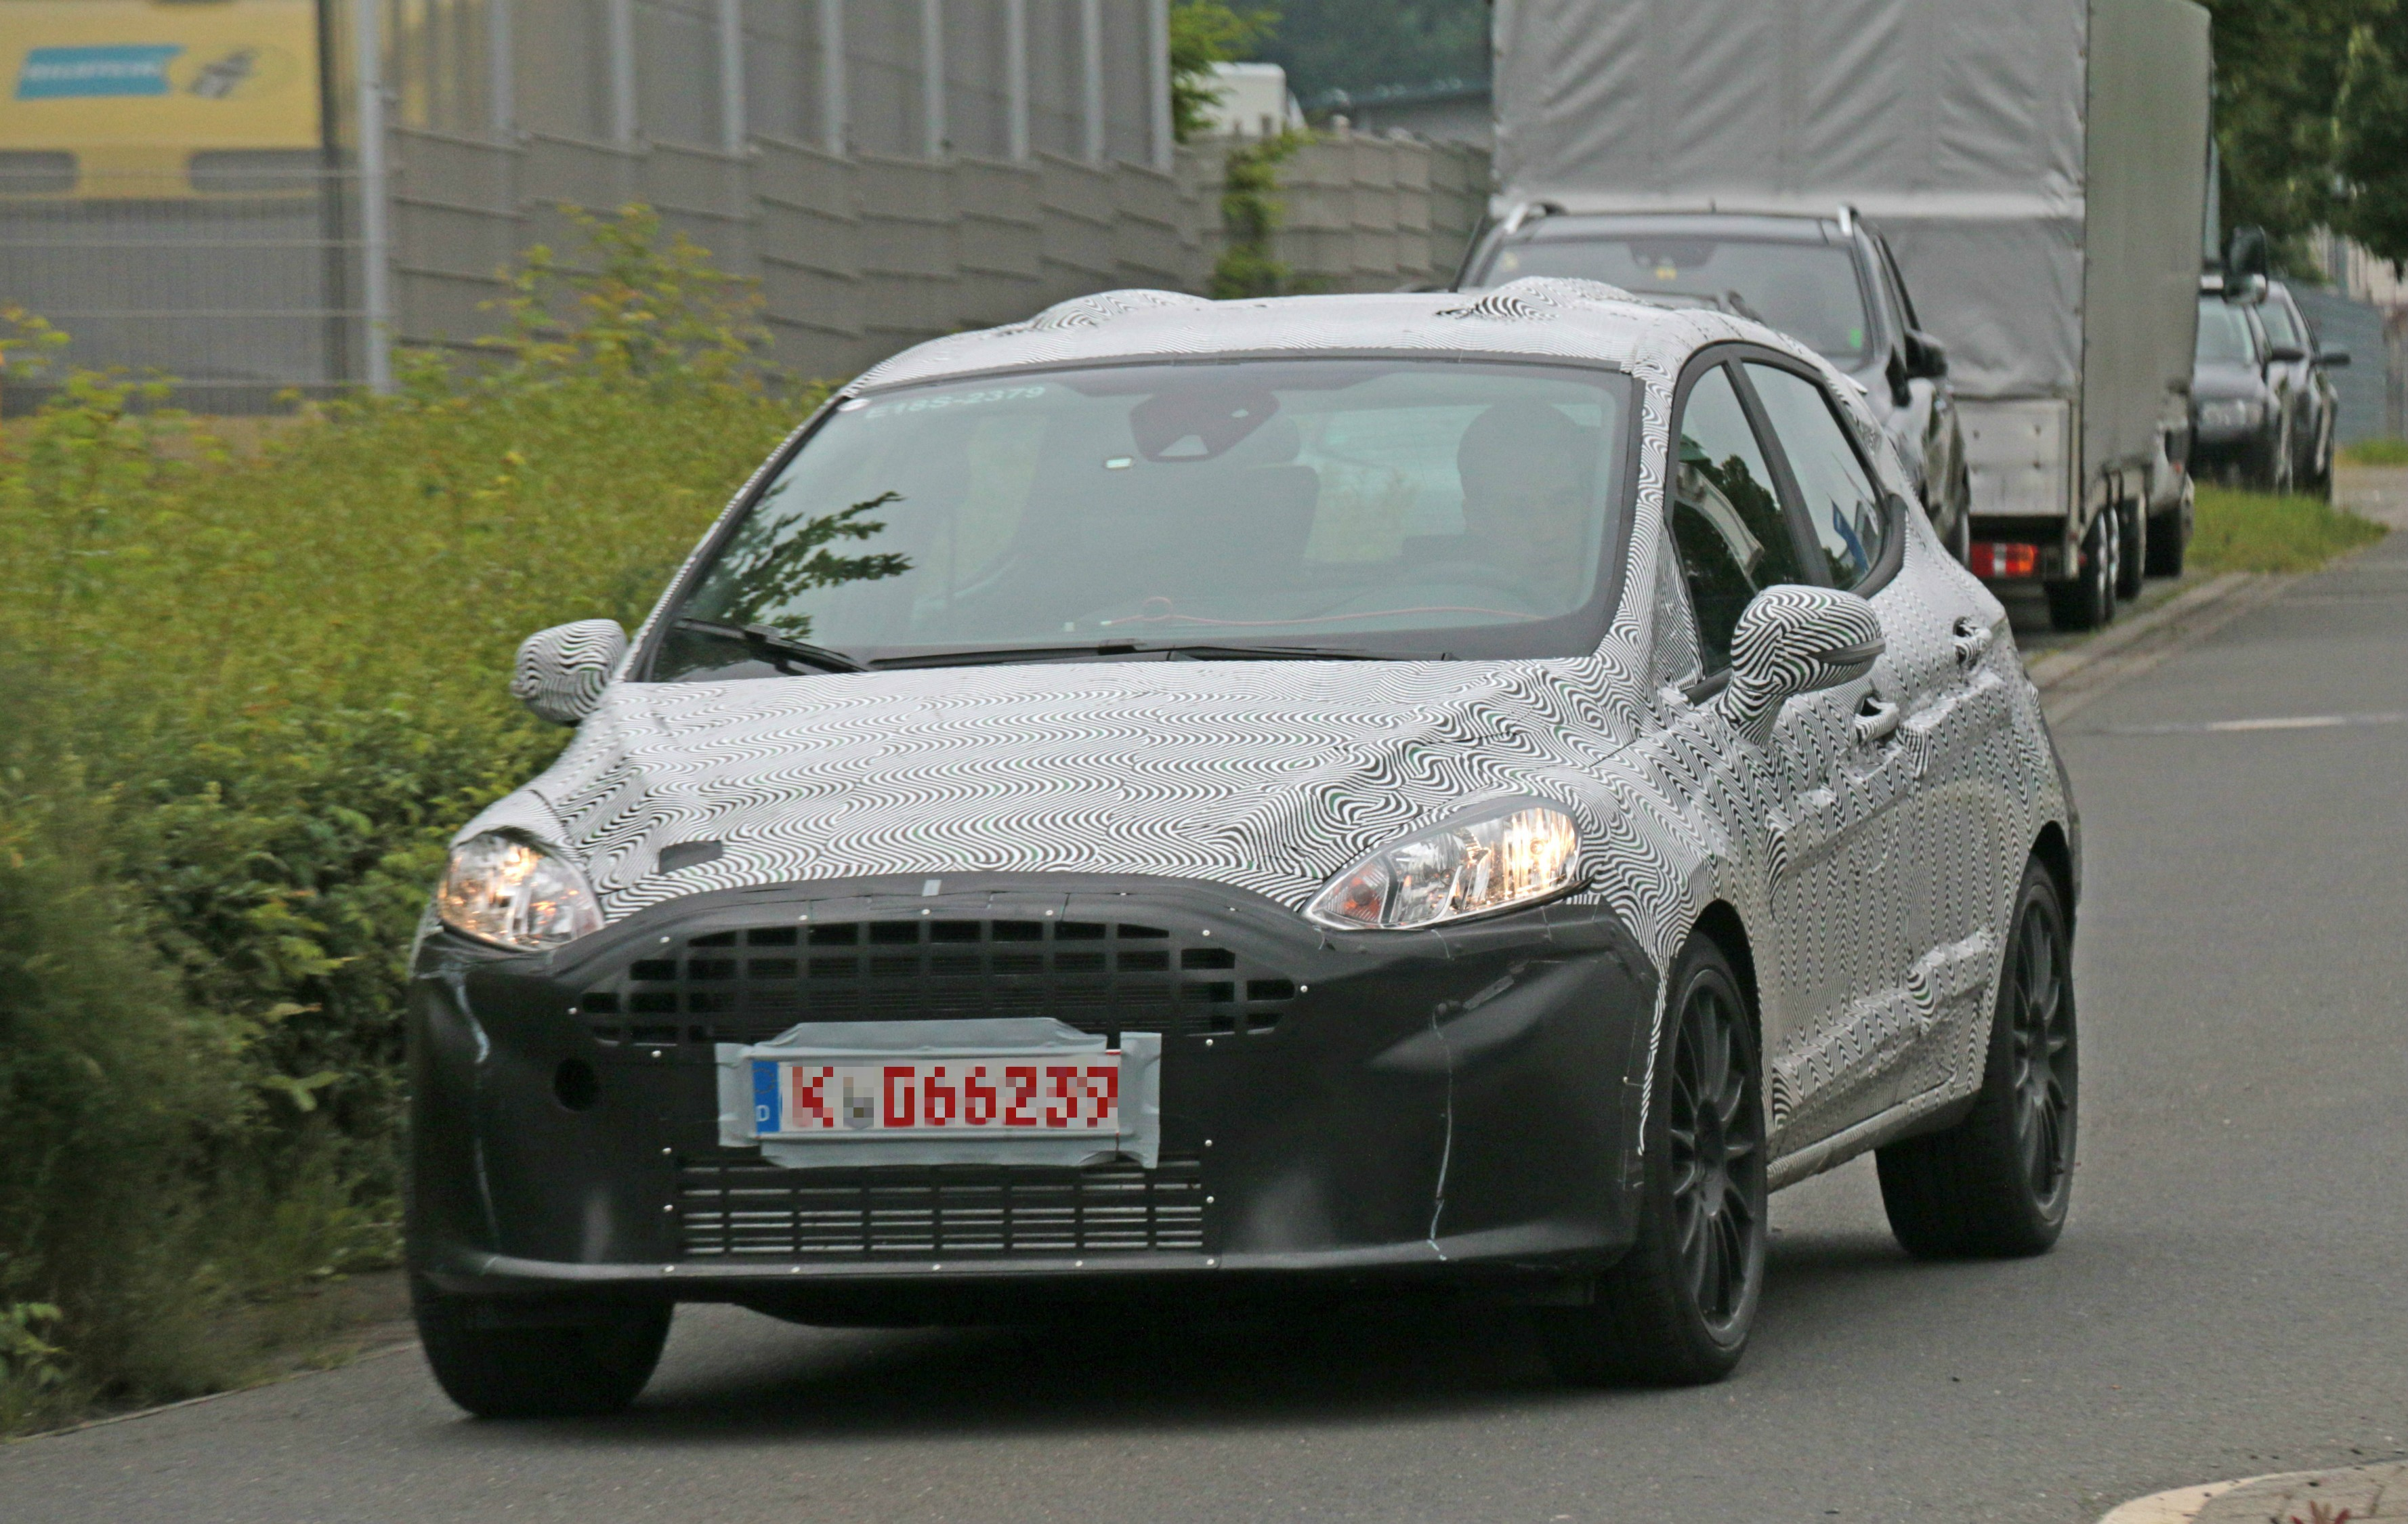 2018 Ford Fiesta S photo - 3